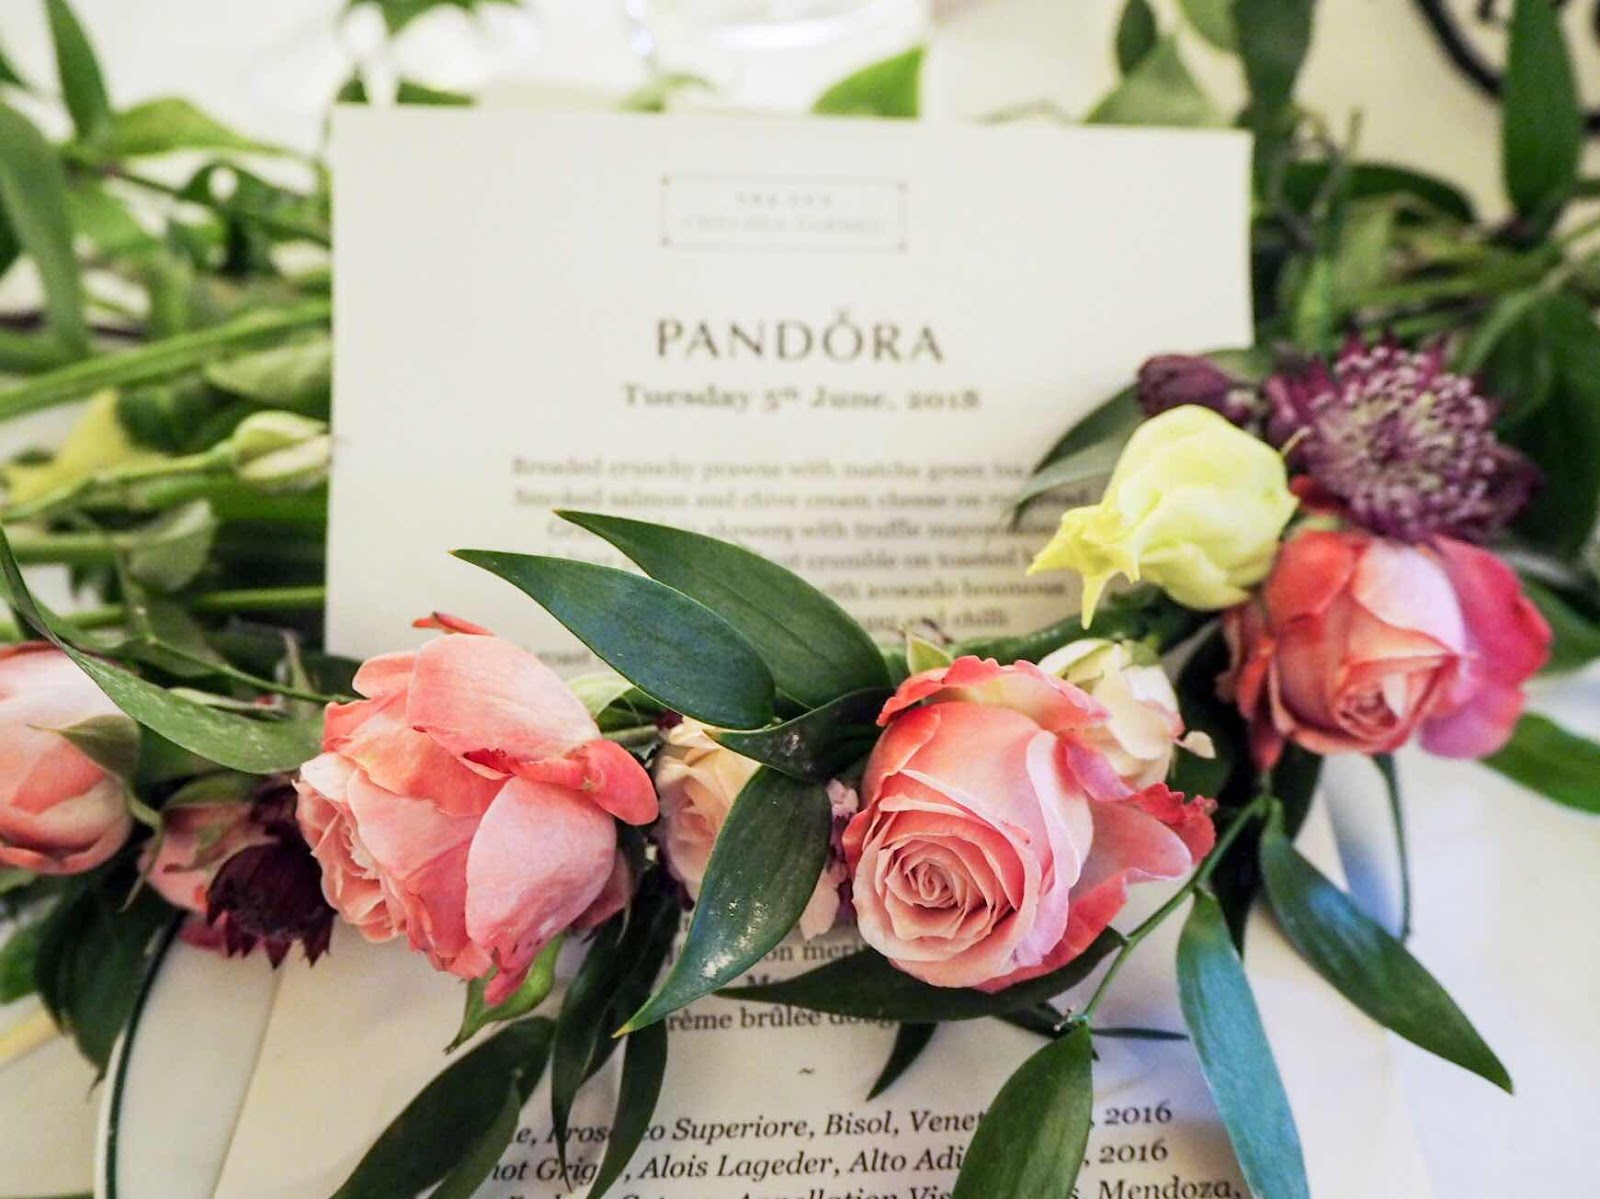 blogging-event-pandora-flower-crown-making-workshop-wedding-jewellery